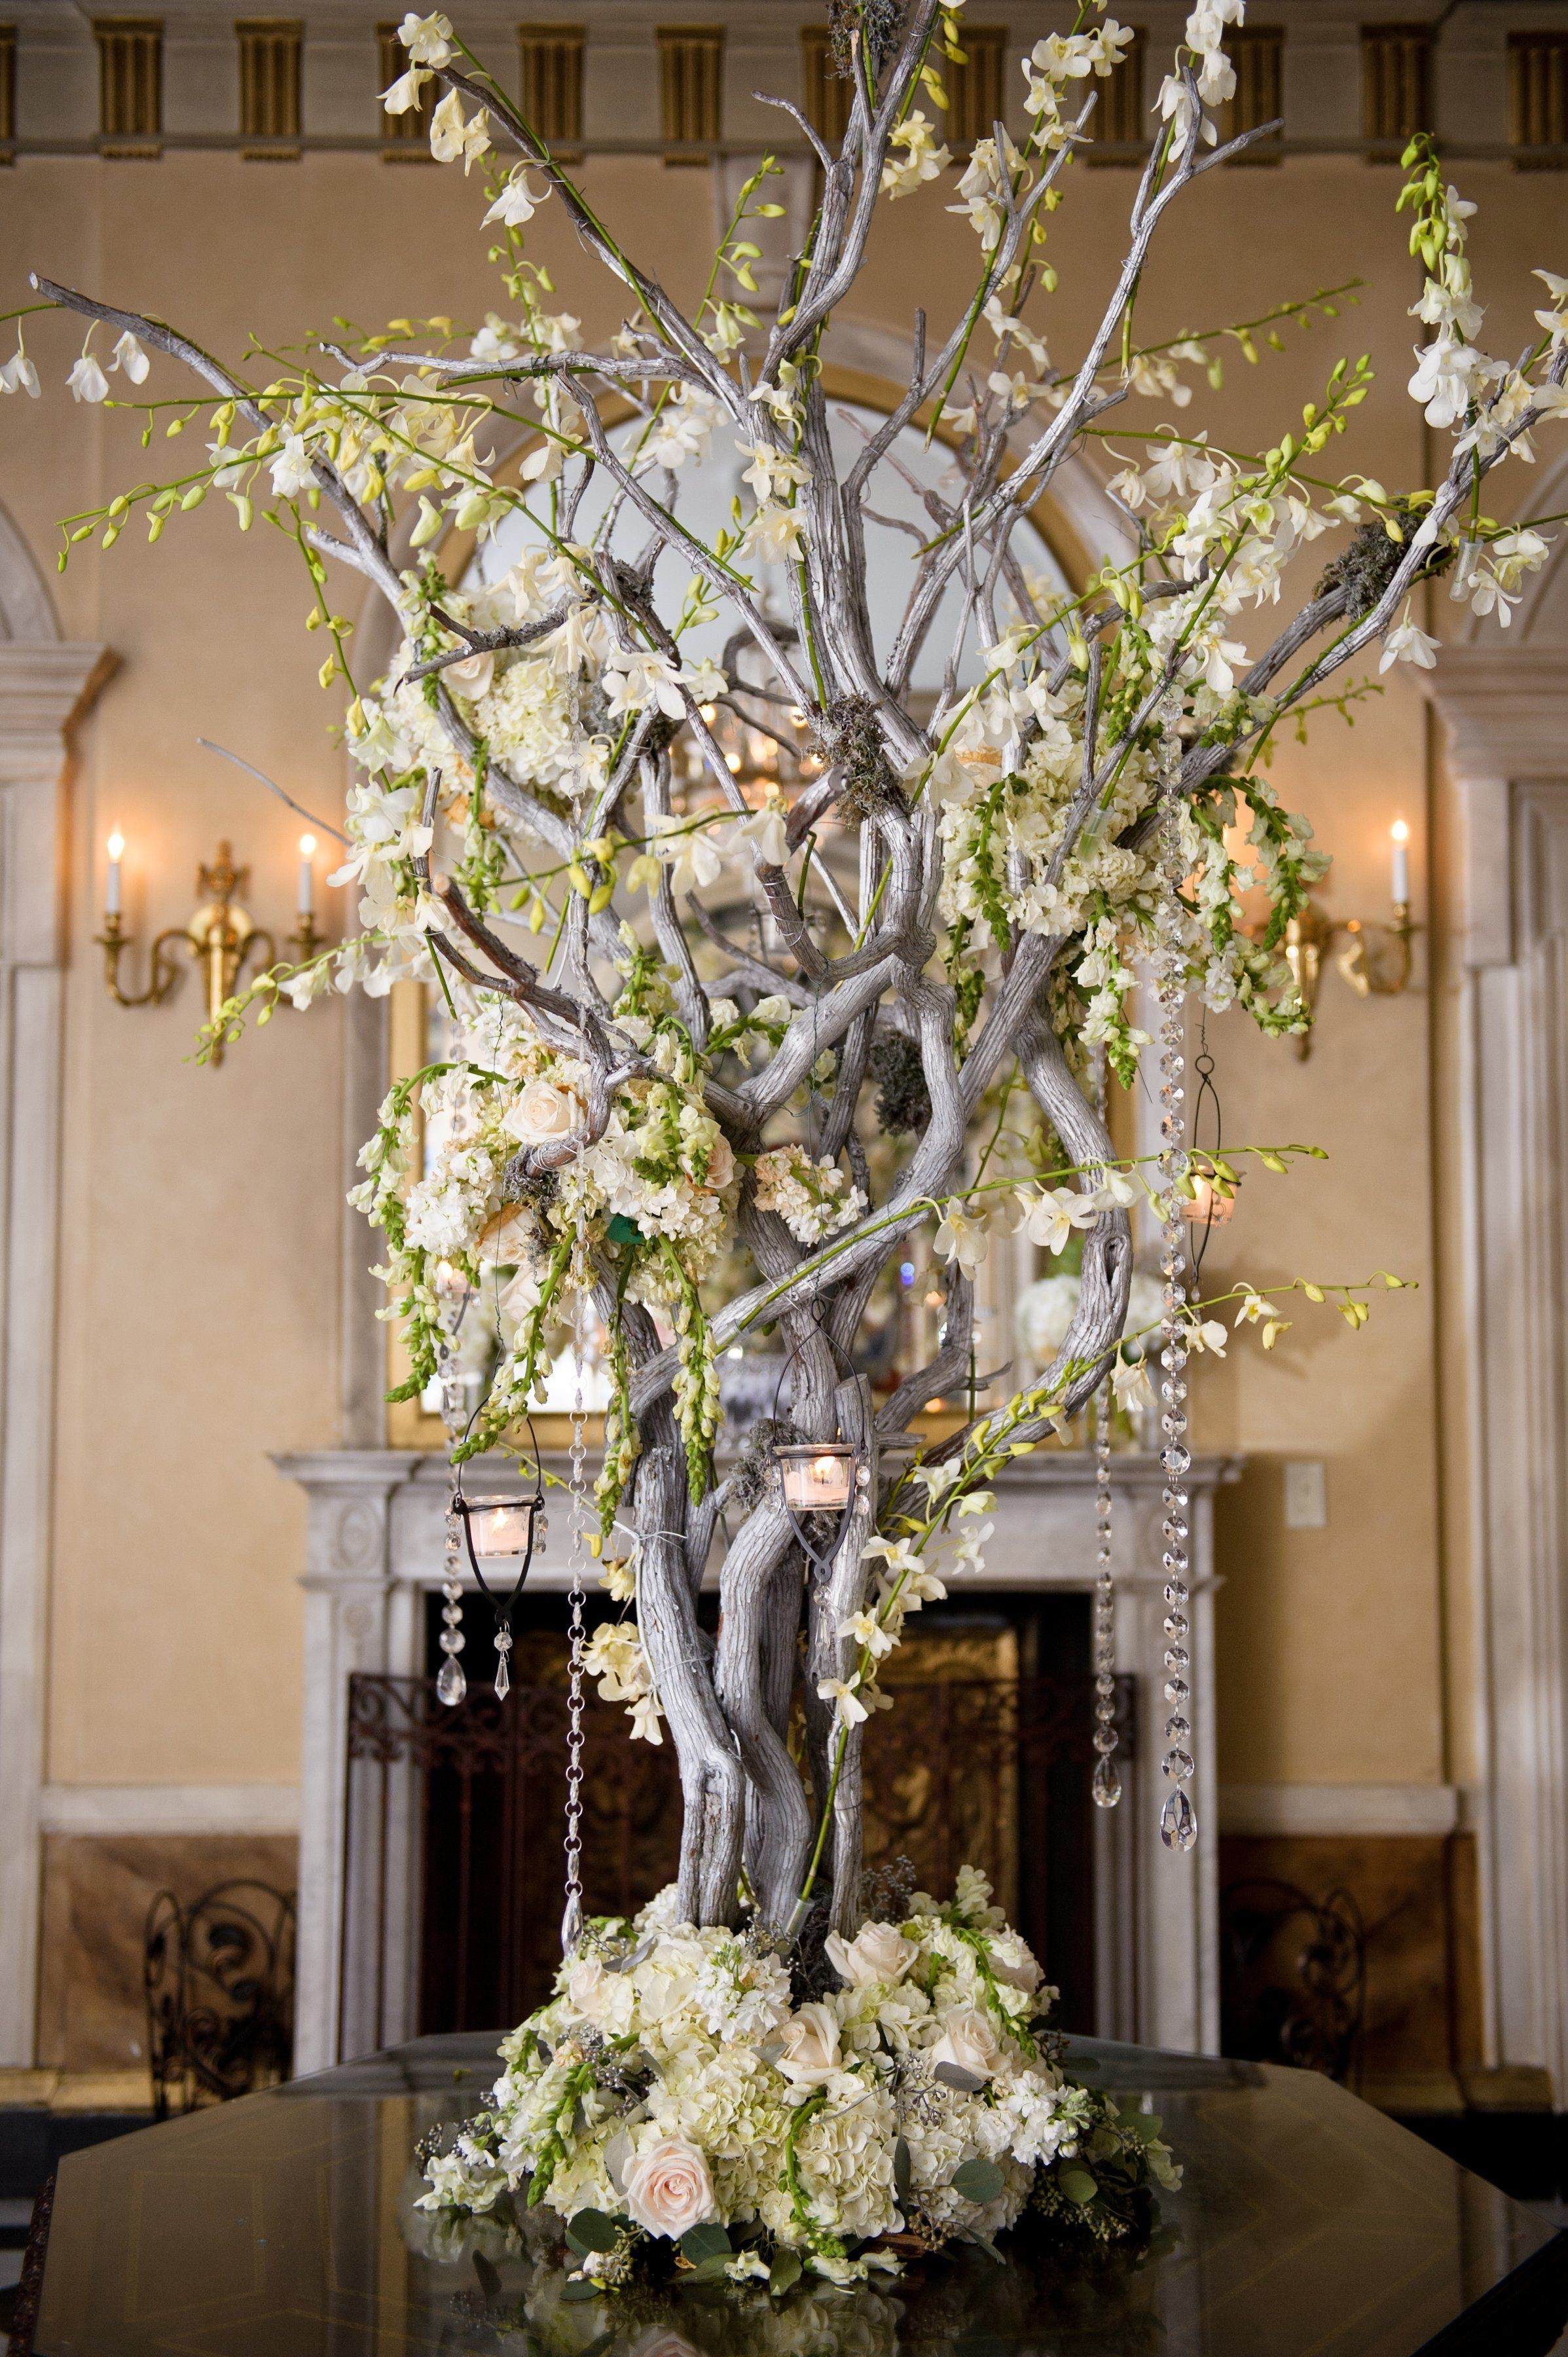 silk flowers in vase with fake water of decorative branches for weddings awesome tall vase centerpiece ideas inside decorative branches for weddings best of a tall arrangement of manzanita branches dripping with white blooms